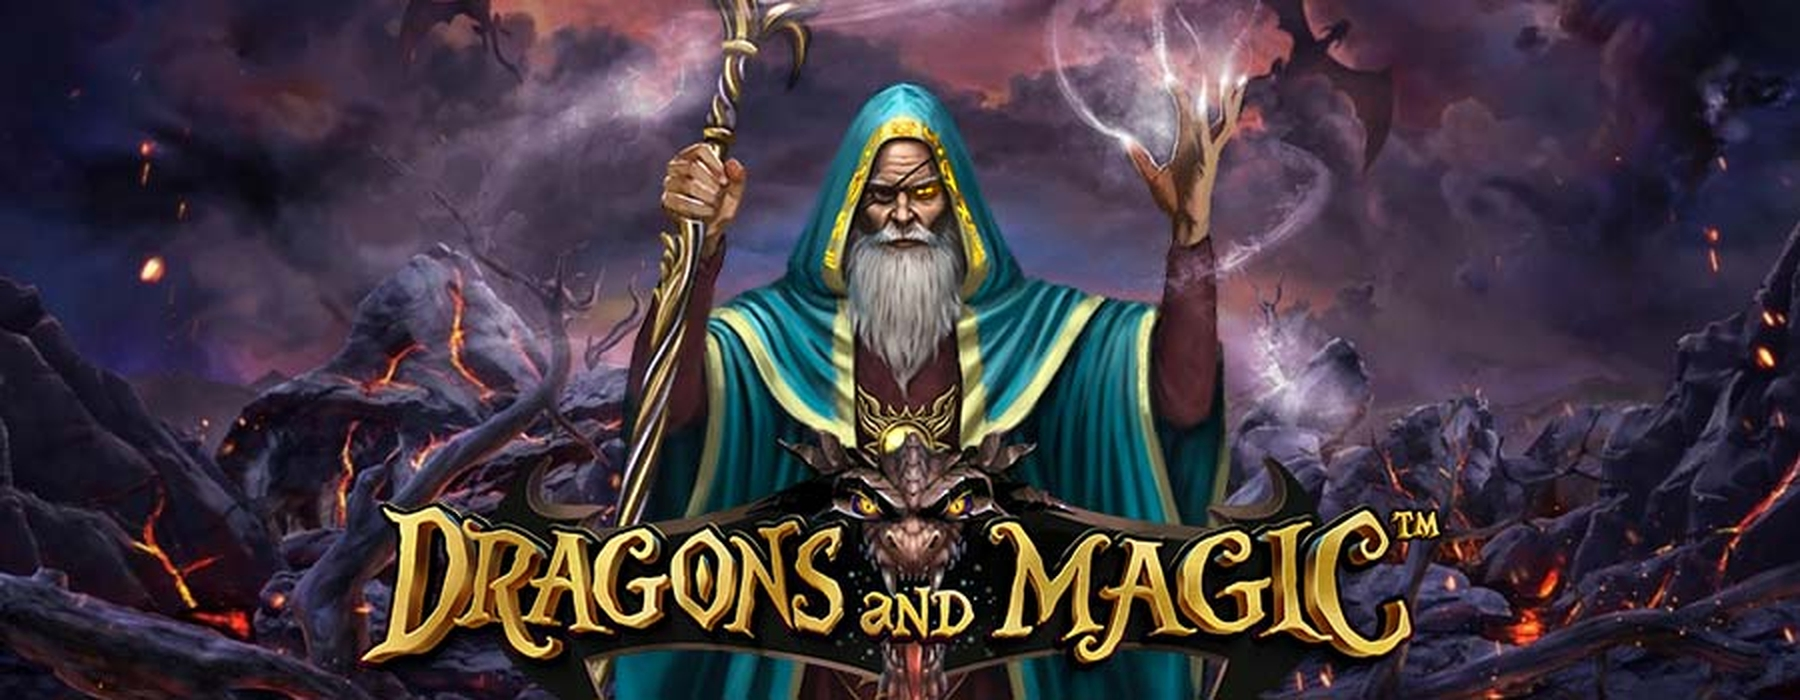 Dragons And Magic Online Slot Demo Game by Stakelogic